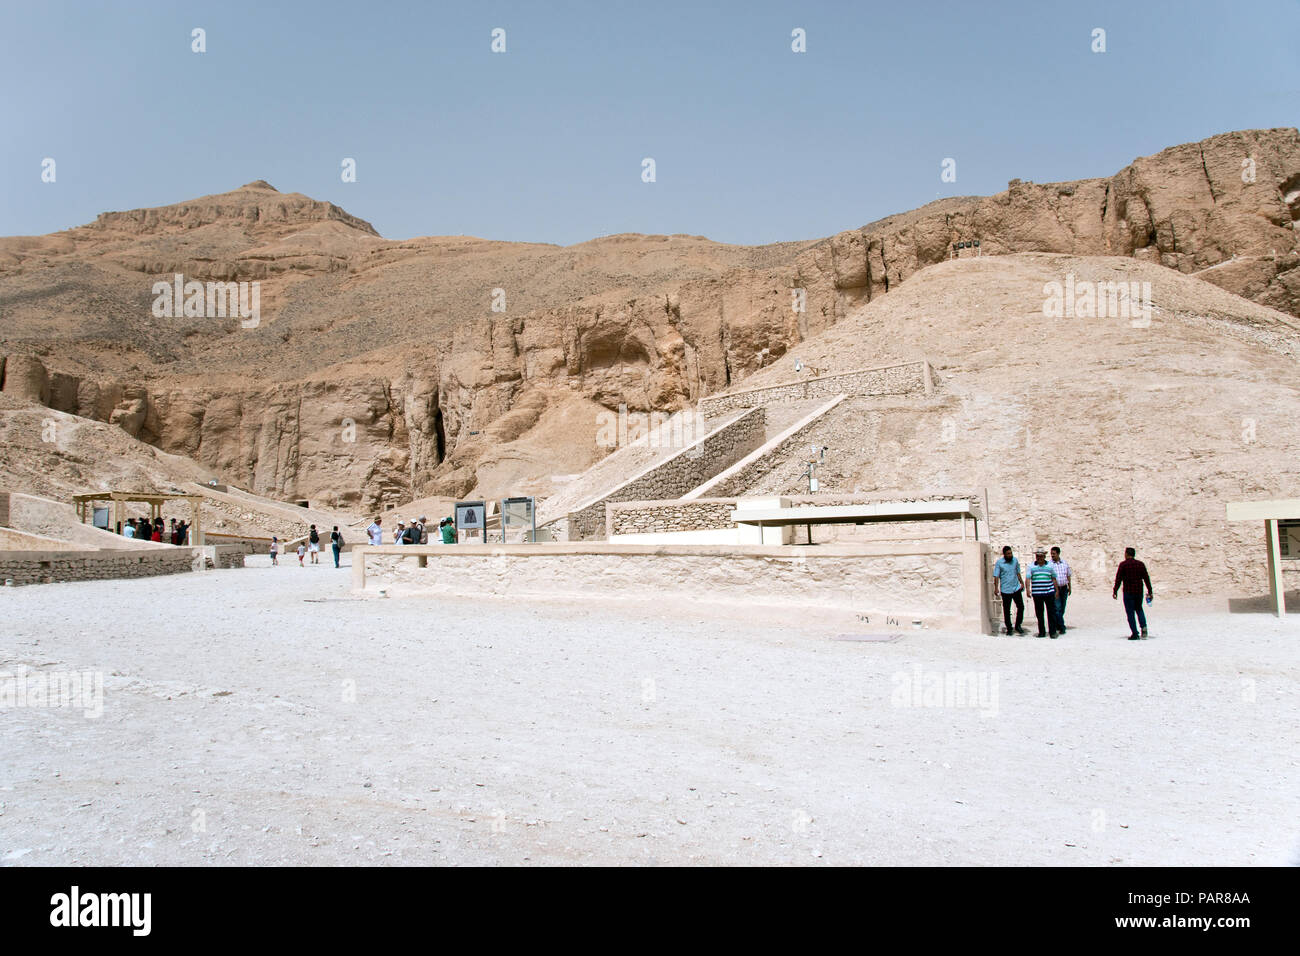 The tomb of pharaoh Tutankhamun (King Tut), renowned for its wealth of gold and valuable antiquities, in the Valley of the Kings, Luxor, Egypt. - Stock Image